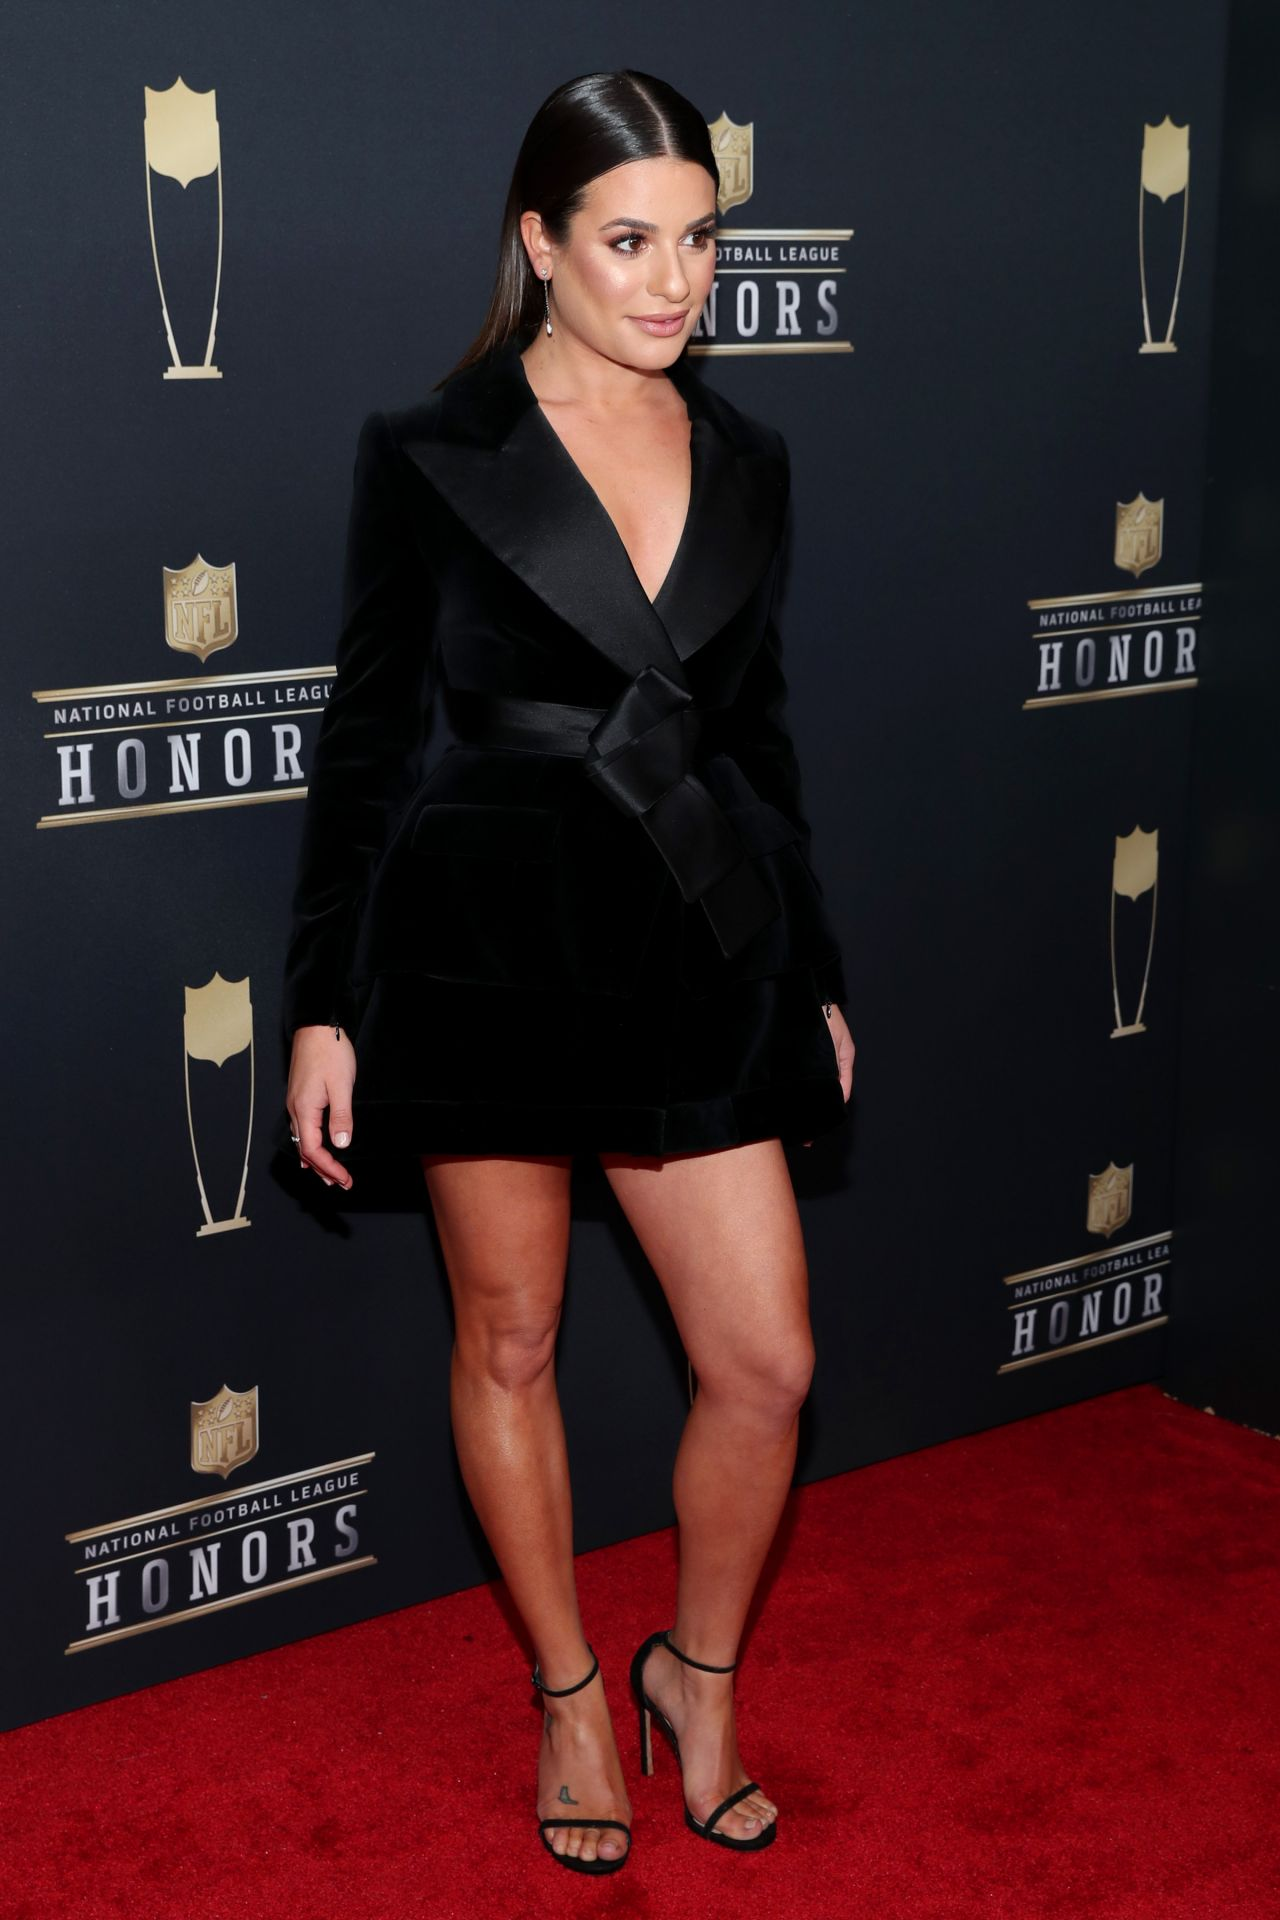 http://celebmafia.com/wp-content/uploads/2018/02/lea-michele-nfl-honors-at-university-of-minnesota-in-minneapolis-5.jpg